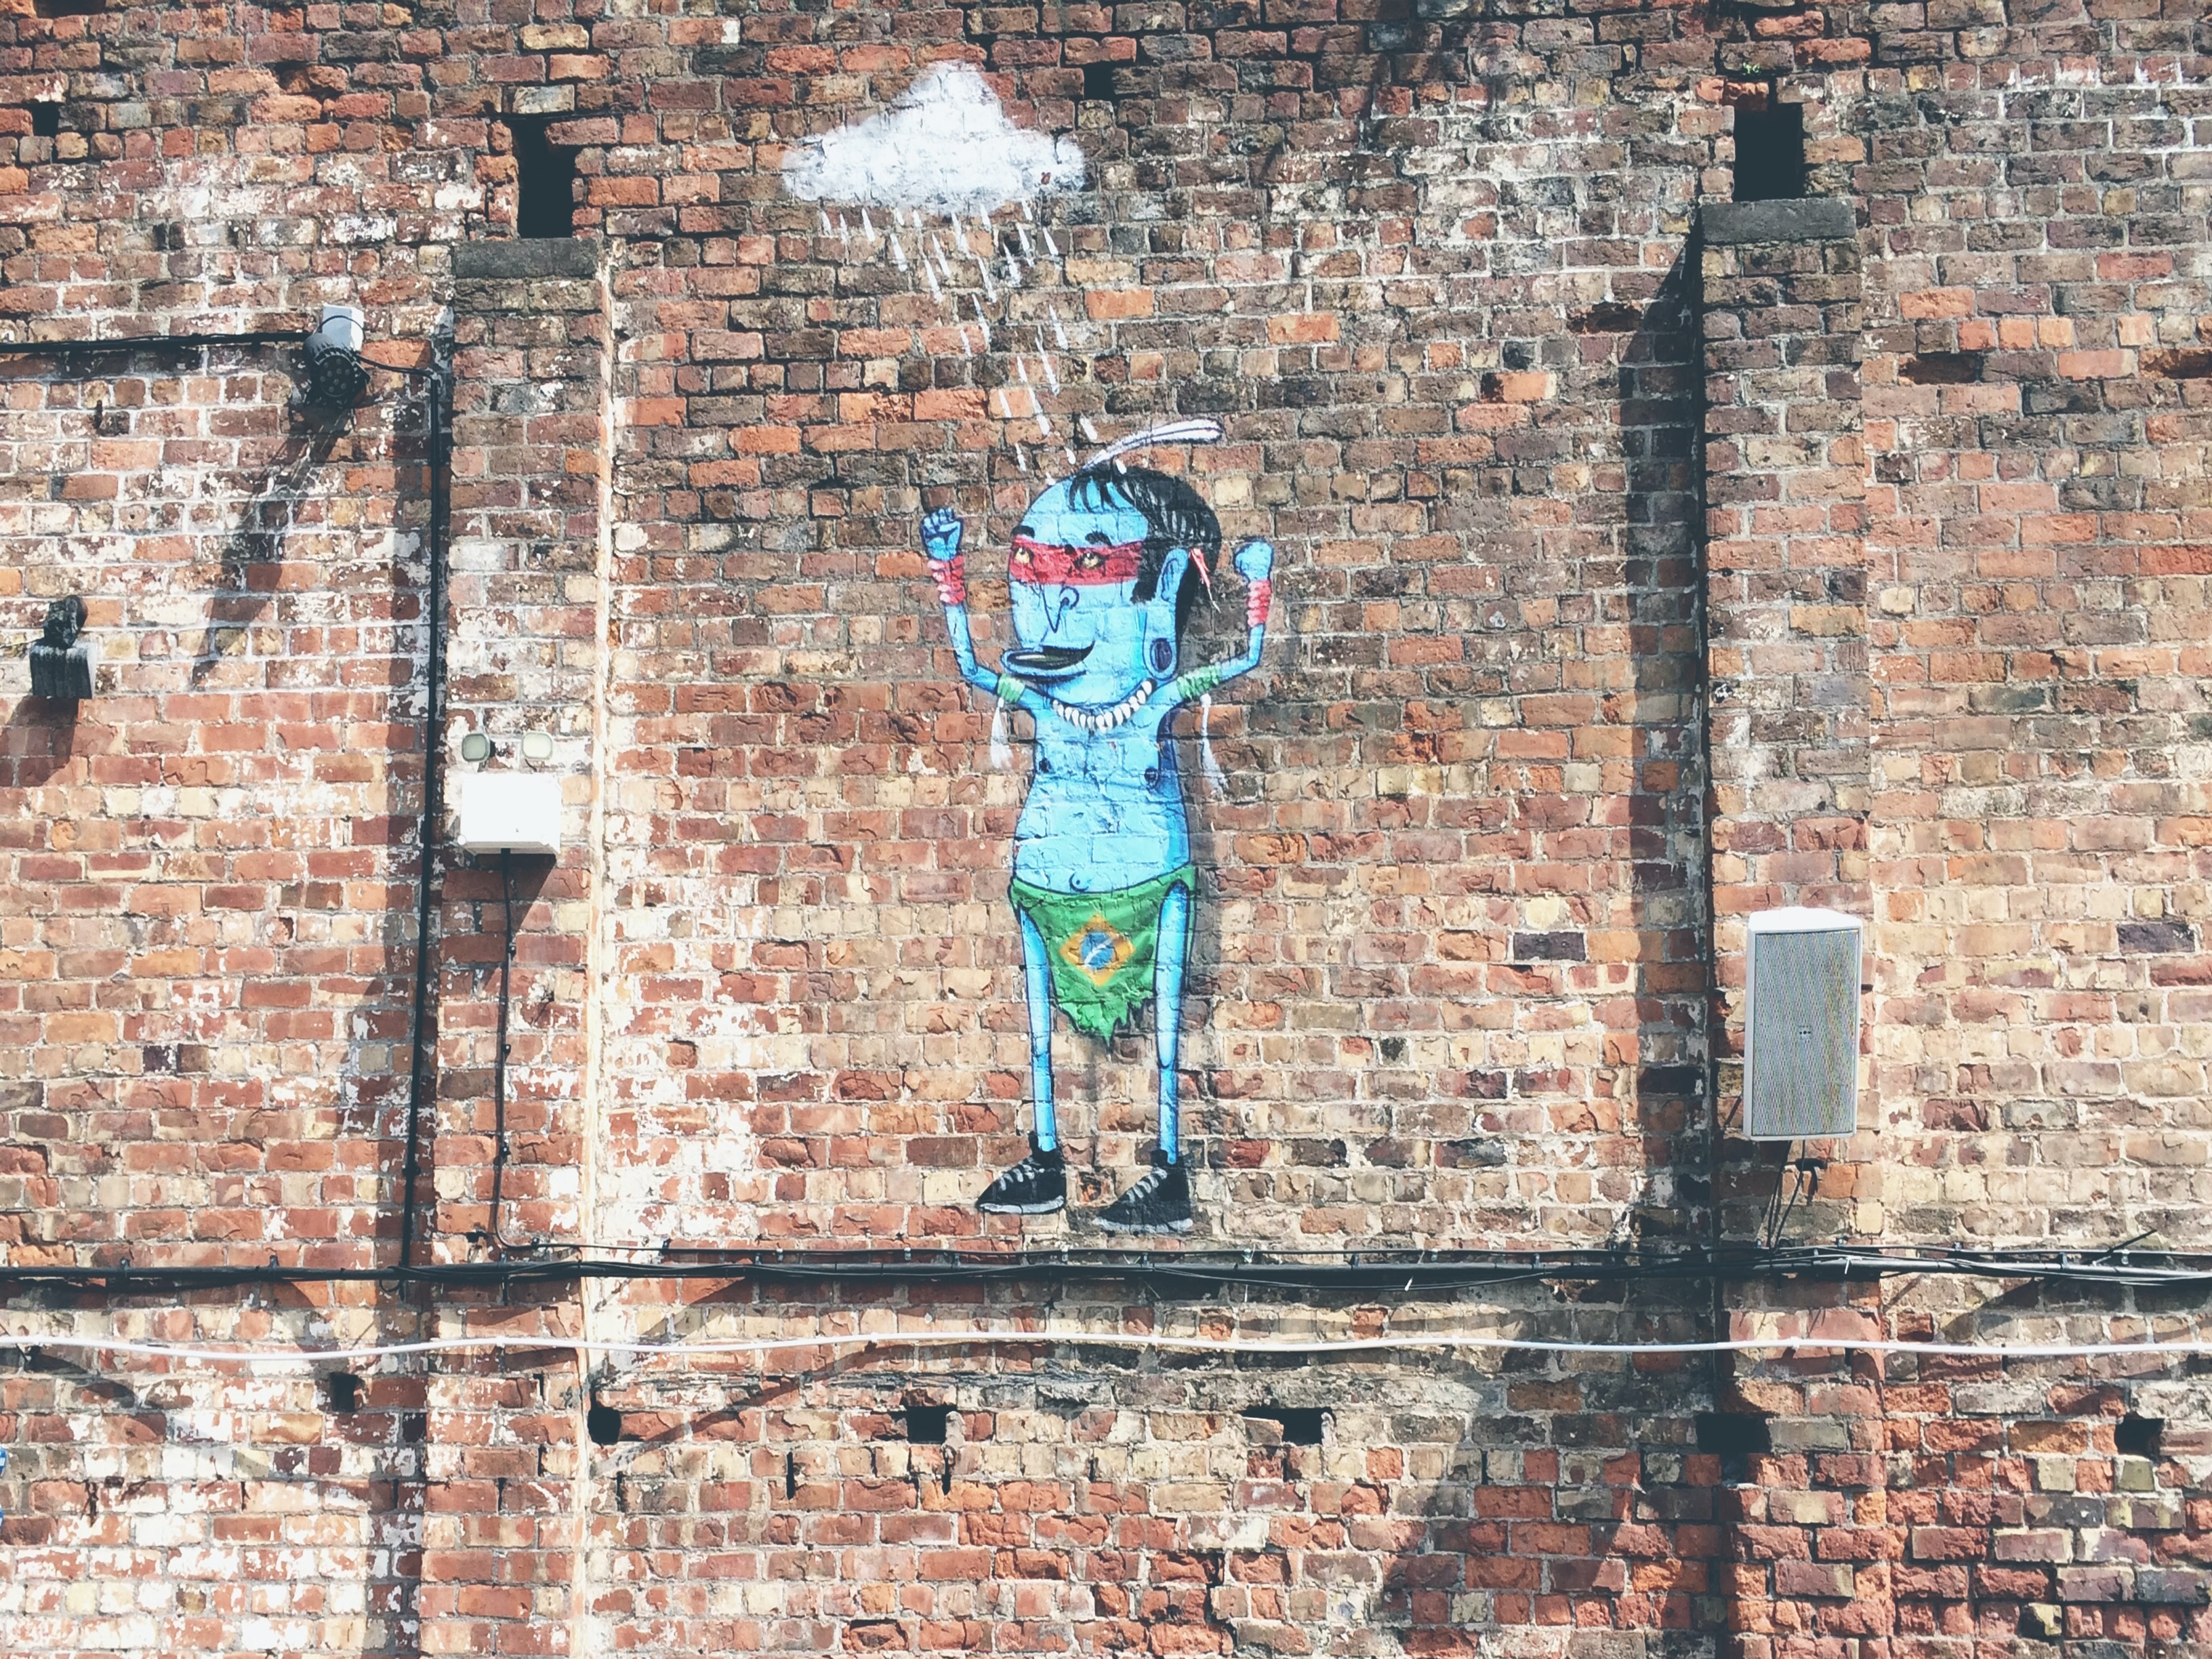 Random cartoon art piece on plain brick wall in Liverpool